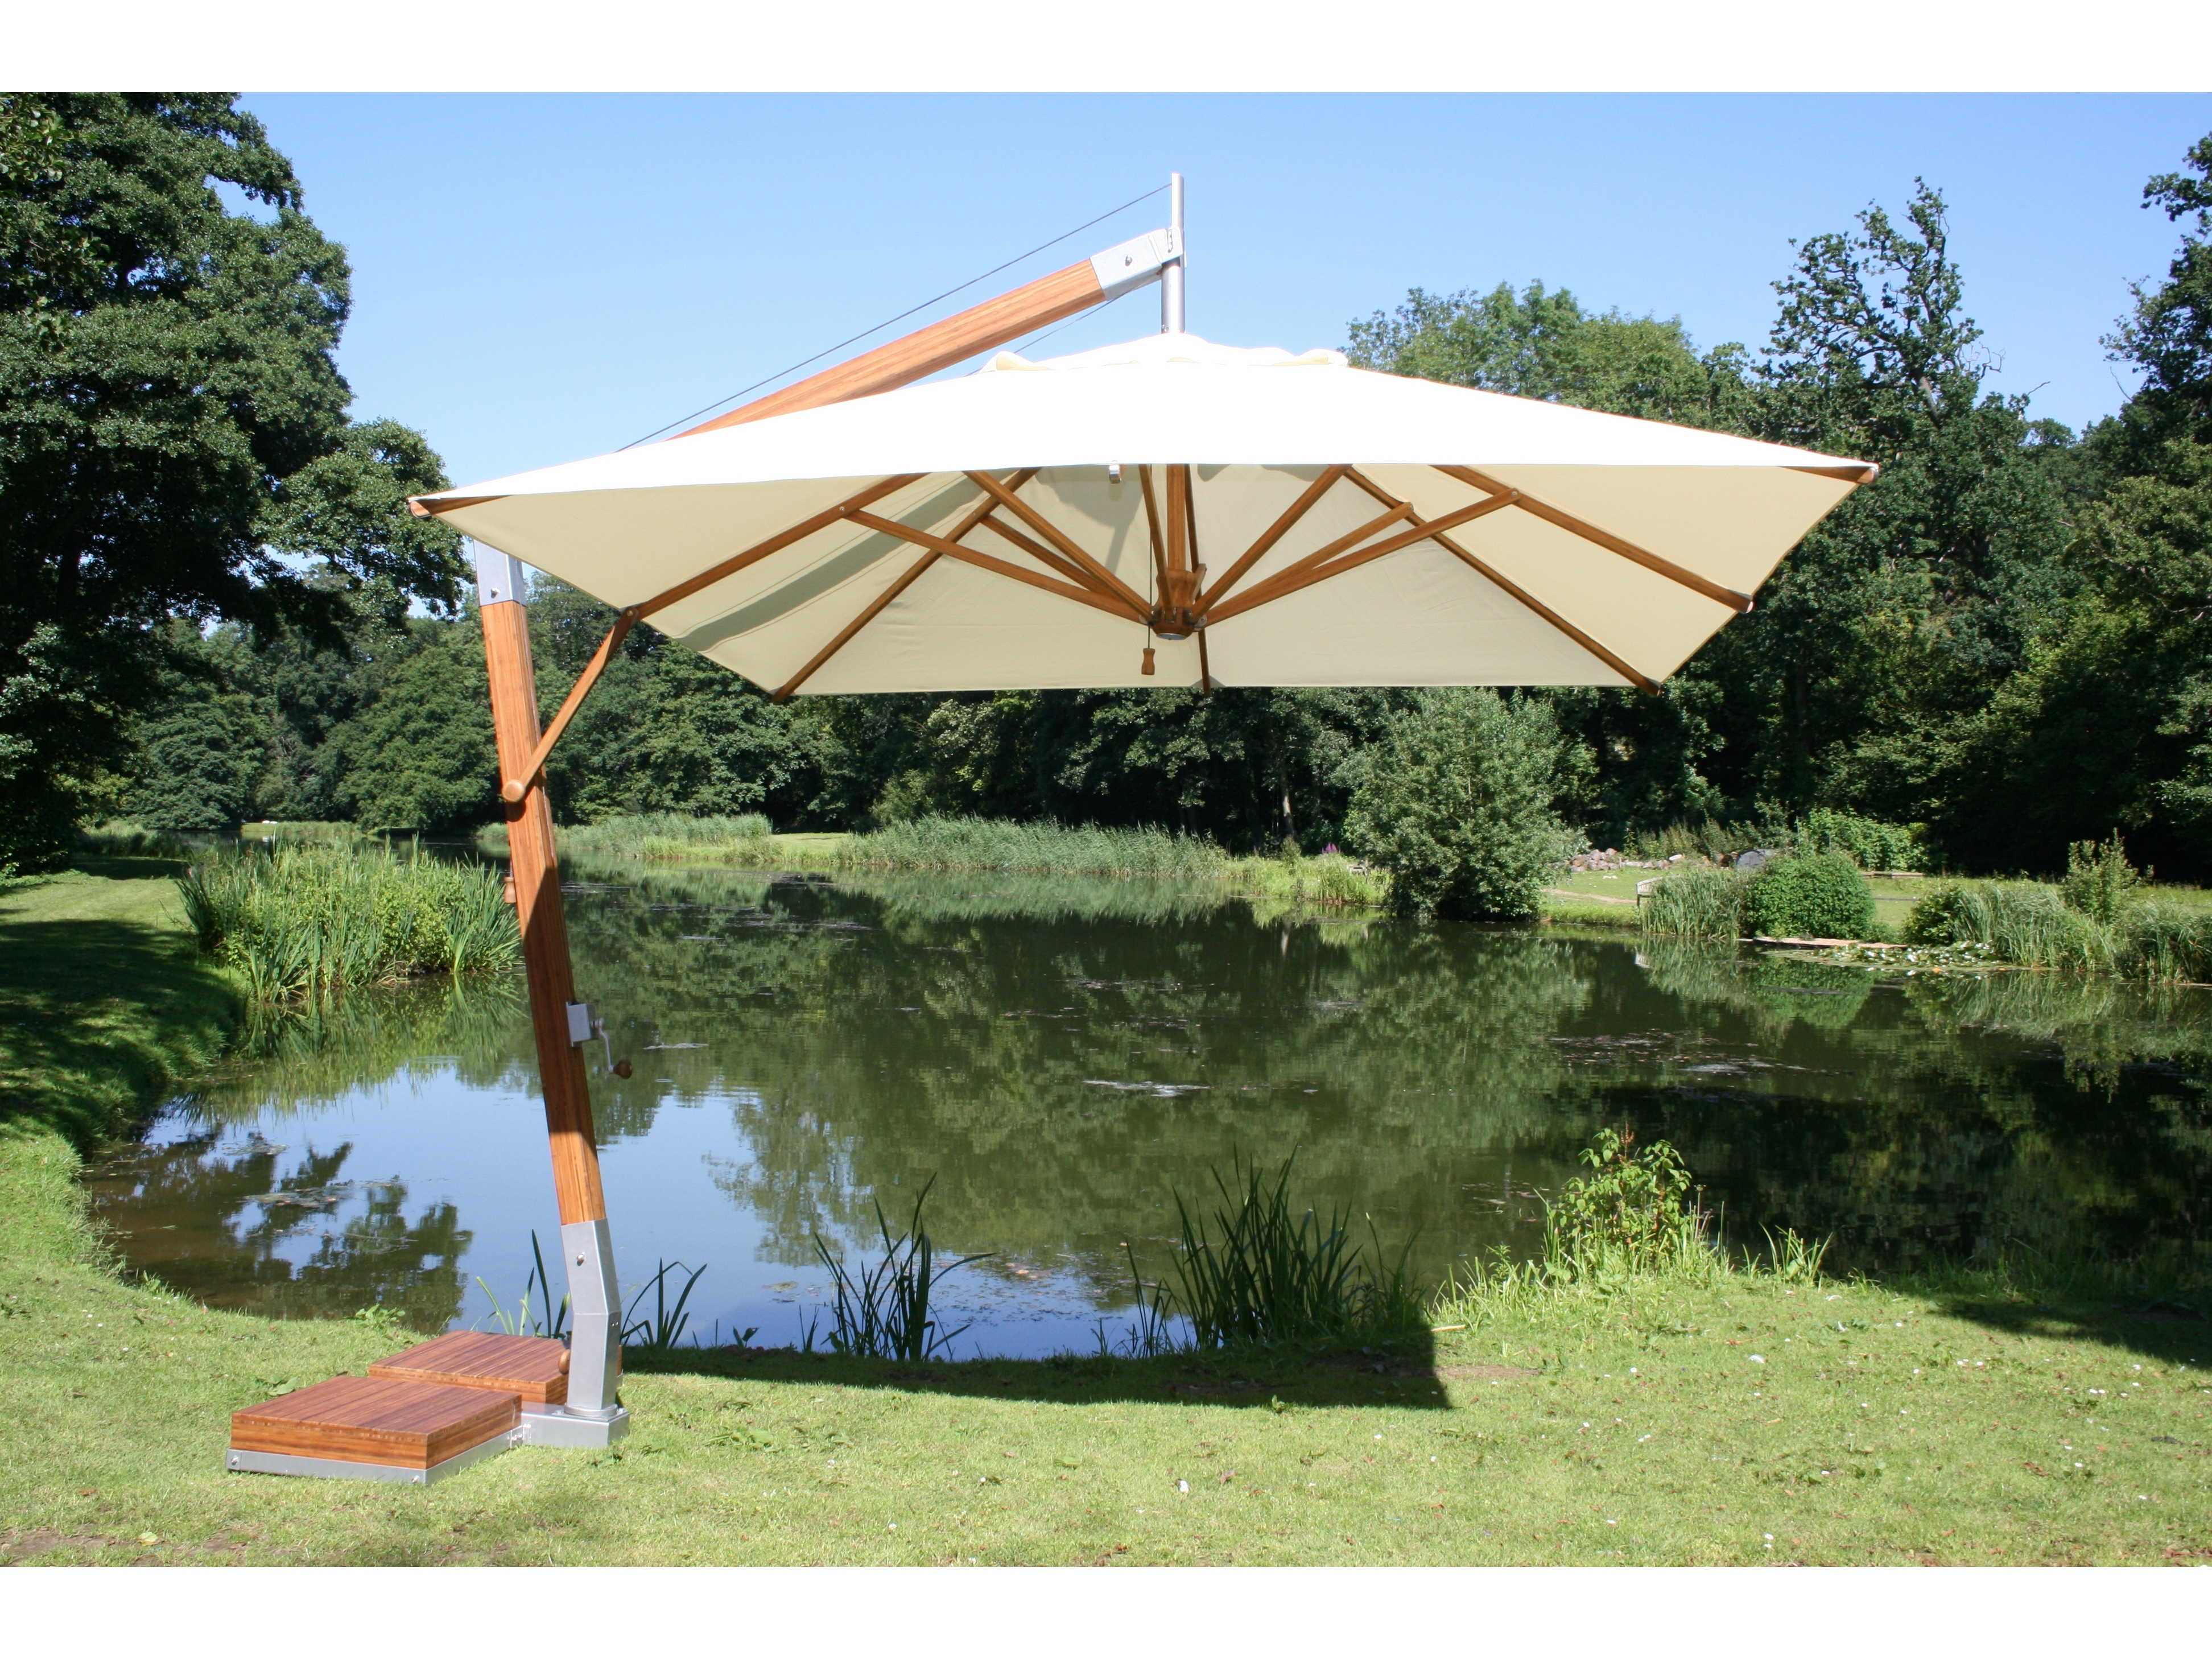 Offset Rectangular Patio Umbrellas For Famous Rectangular White Fabric Offset Patio Umbrella With Wood And Metal (View 11 of 20)